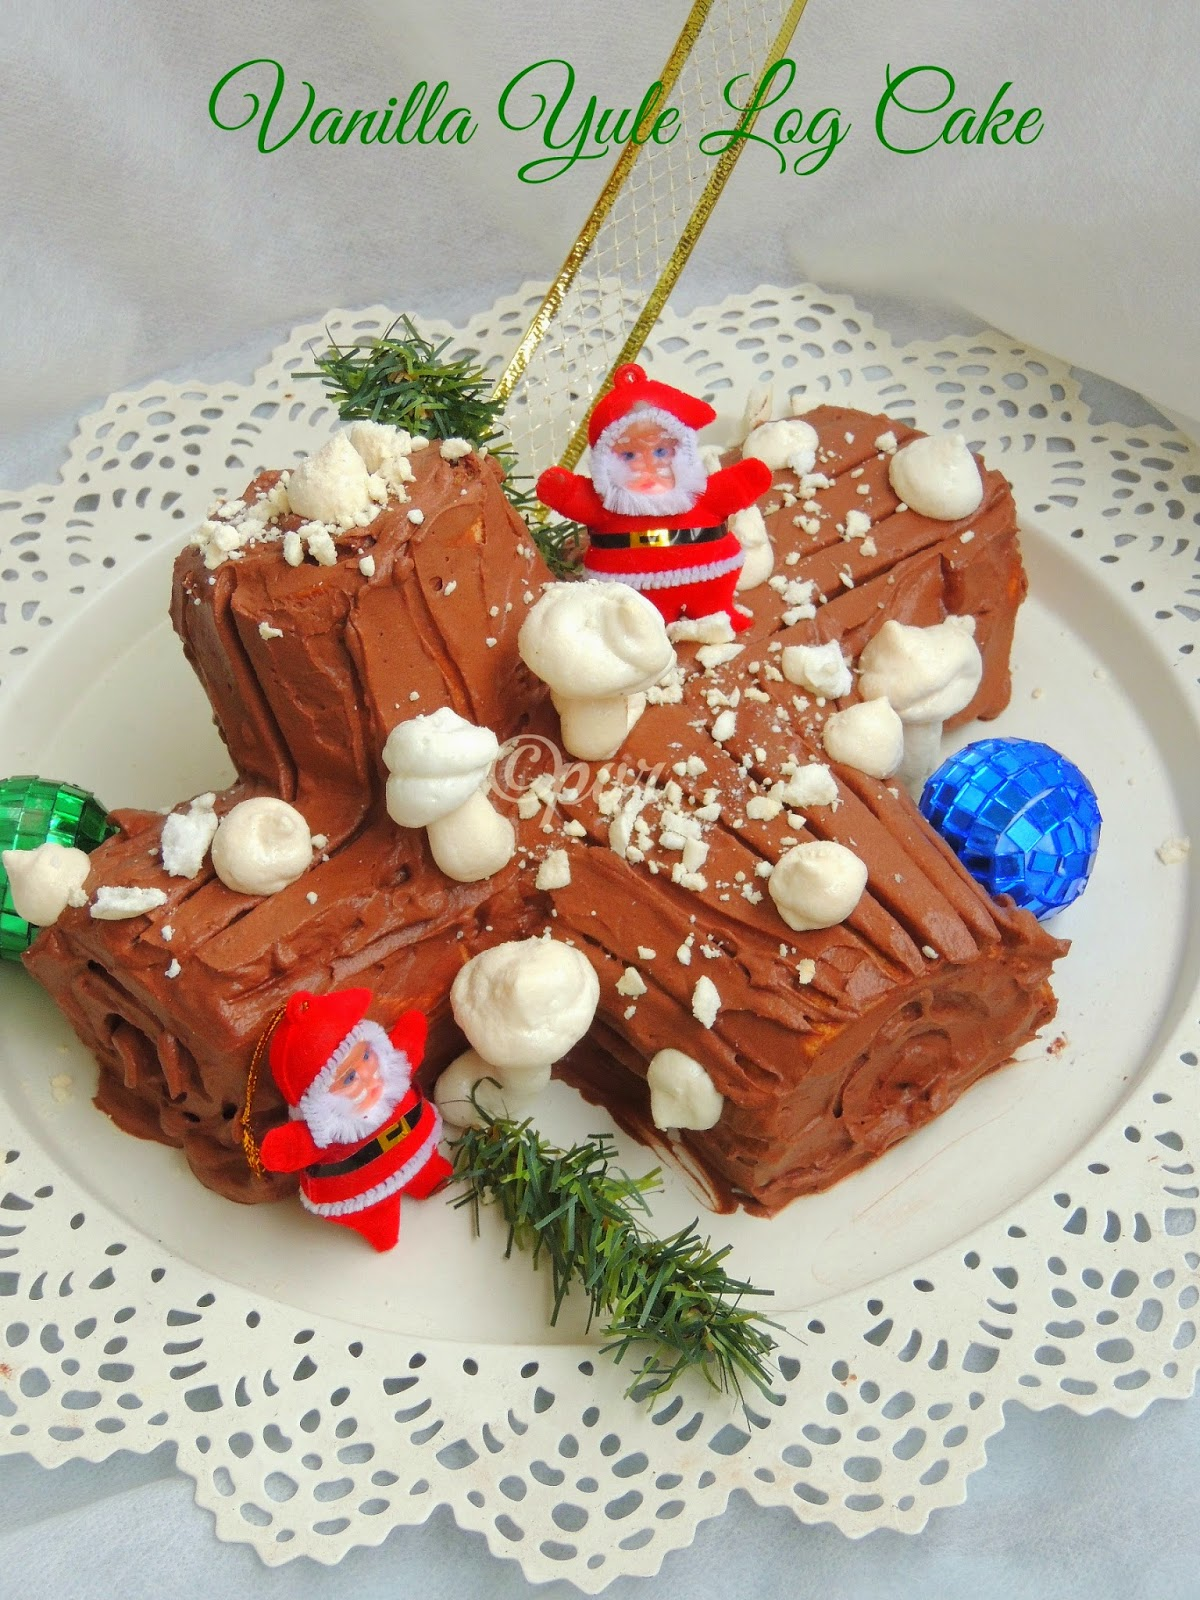 Vanilla Yule Log Cake with chocolate whipped cream